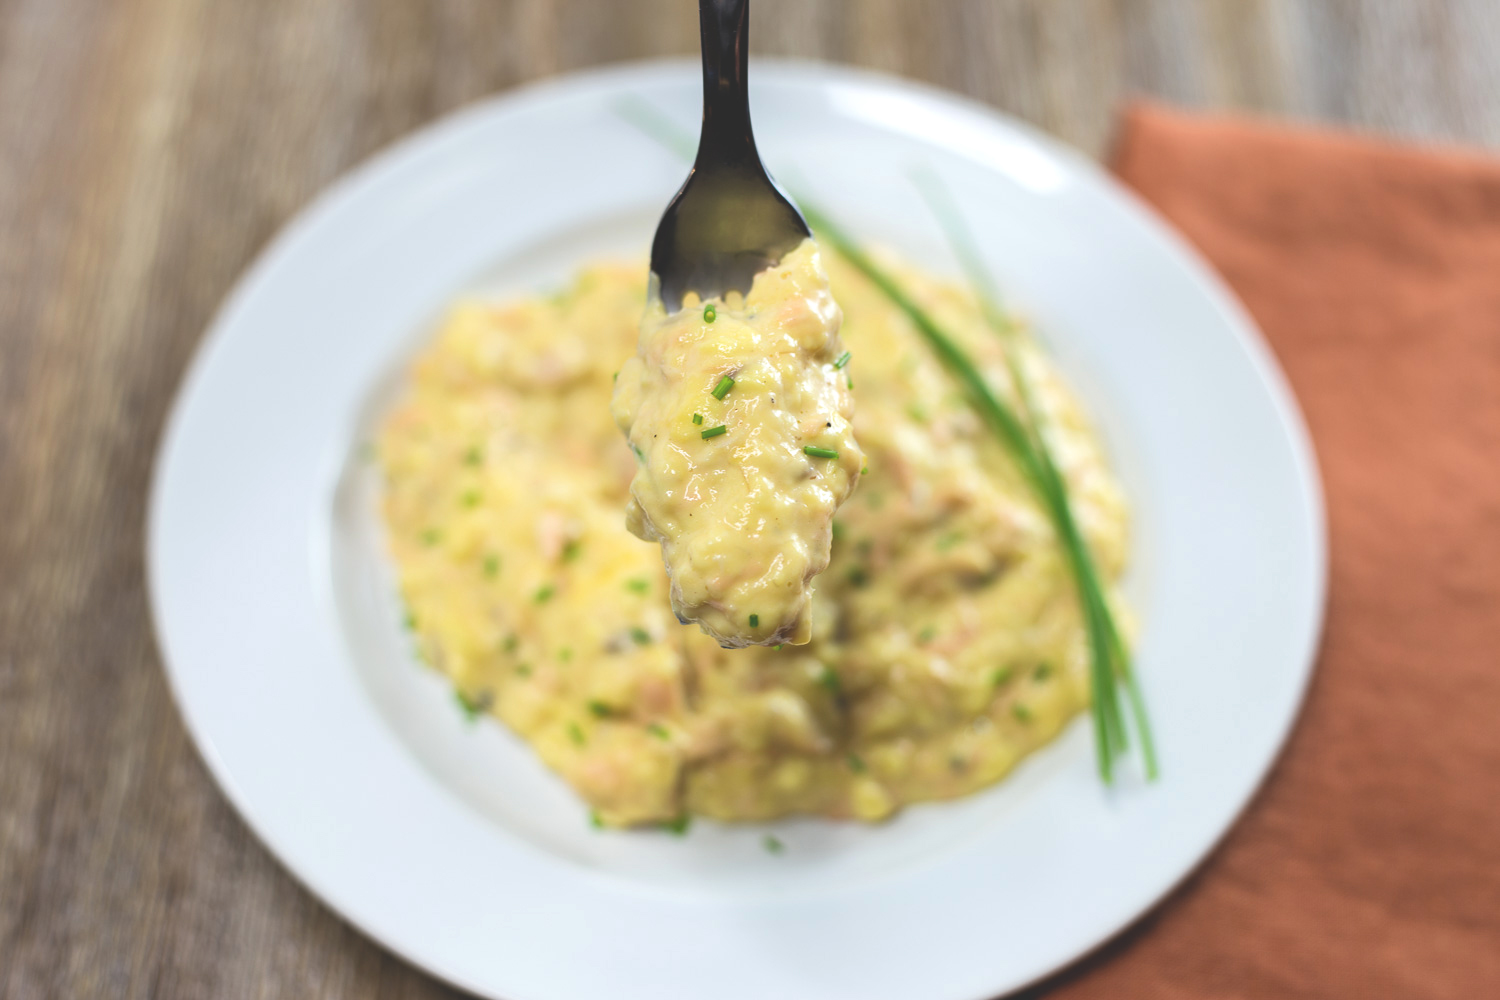 Soft scrambled eggs with salmon and cream cheese are a great way to start your day!